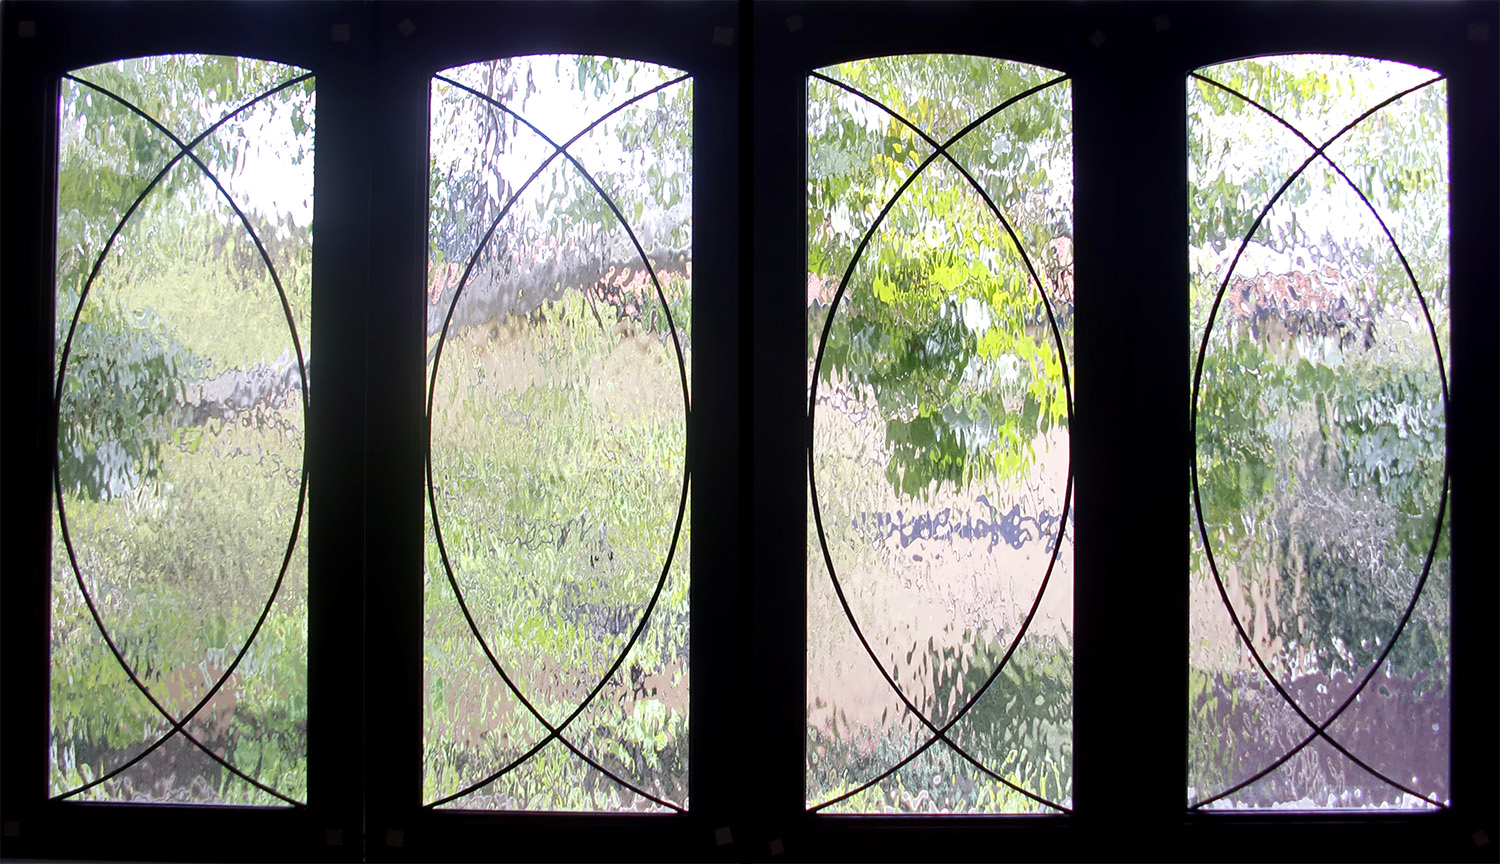 water glass geoemtric clear texture leaded glass stained glass window palo alto atherton california san francisco san jose legacy glass.jpg